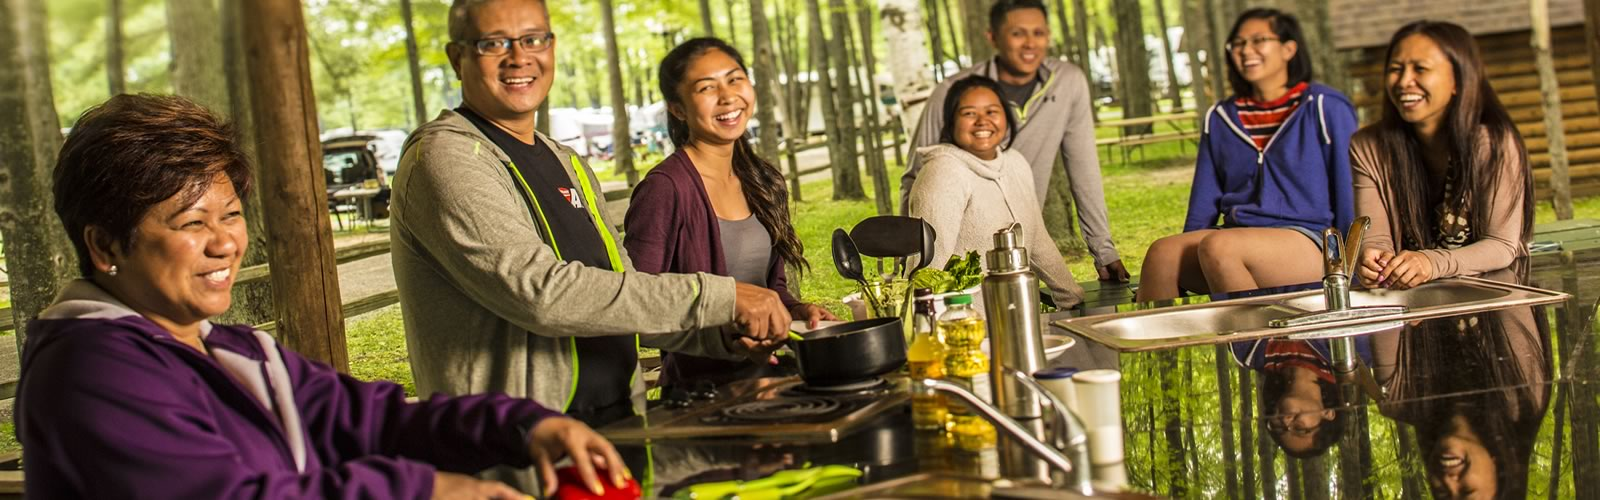 Some of our campsites include gas grills and Deluxe Cabins with kitchenettes feature some limited cooking options. Other campers may need to bring any other cooking gear you want to use